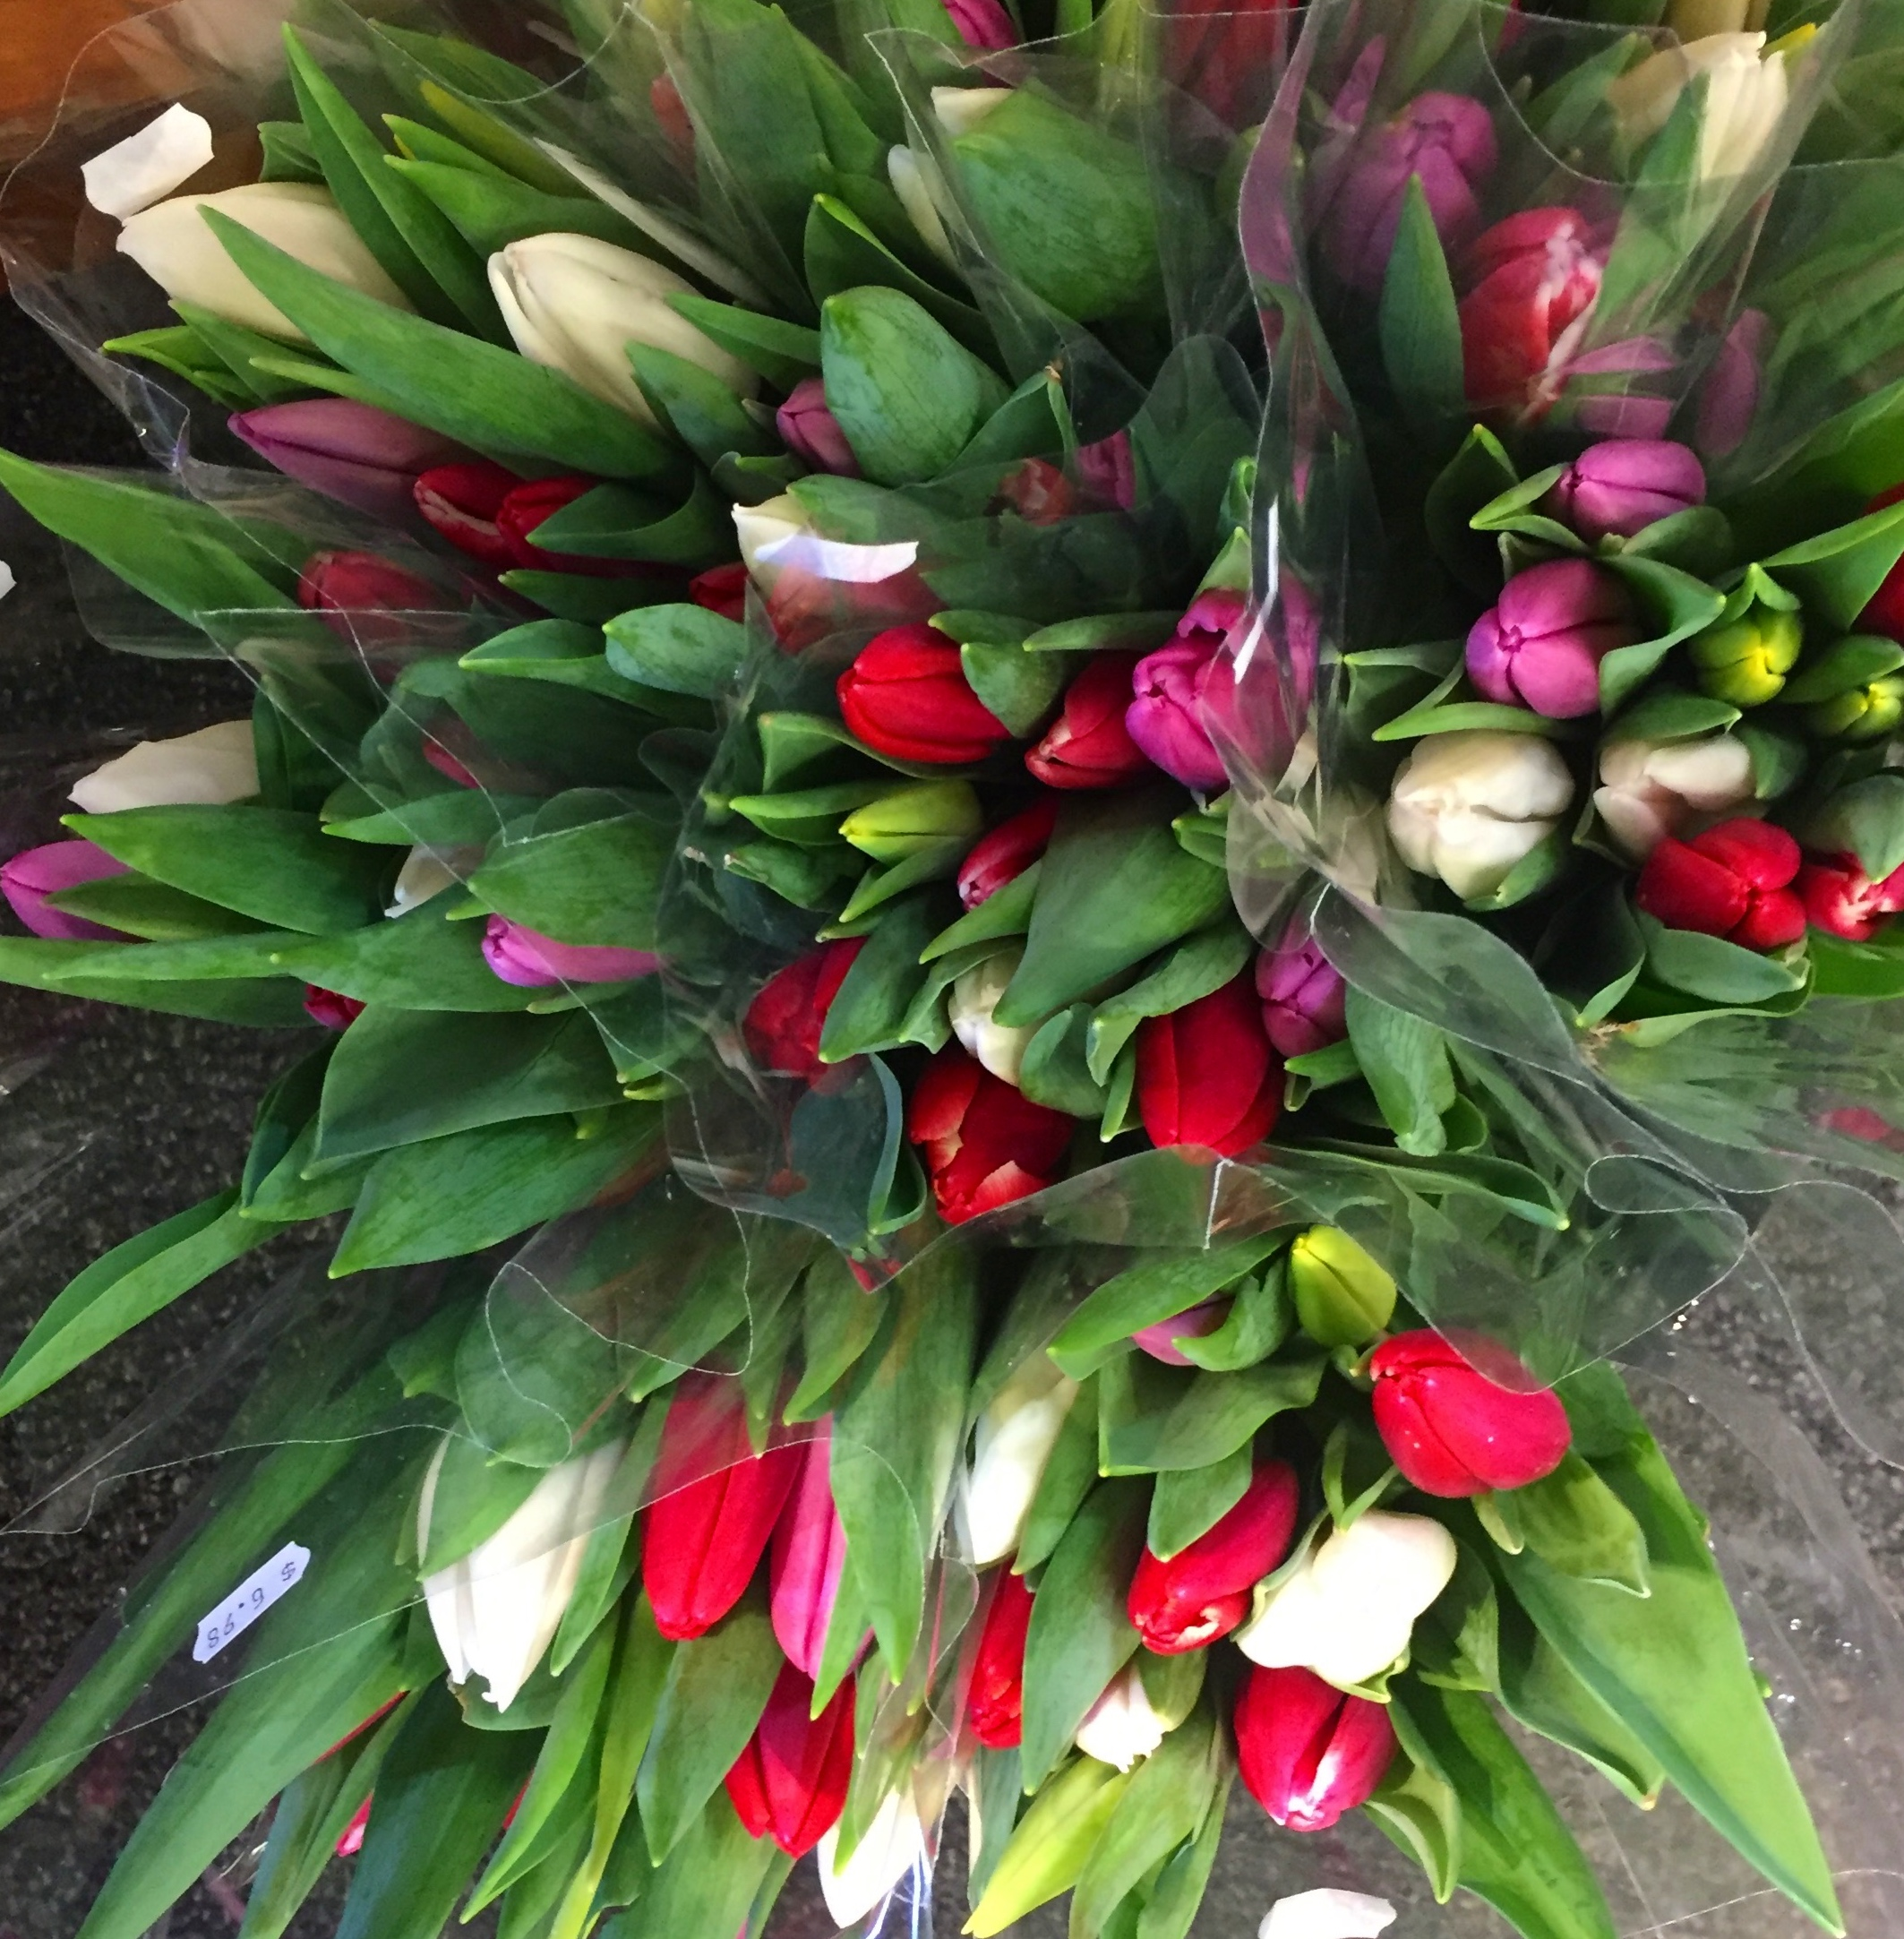 Vibrant, freshly harvested tulips available at Russo's.